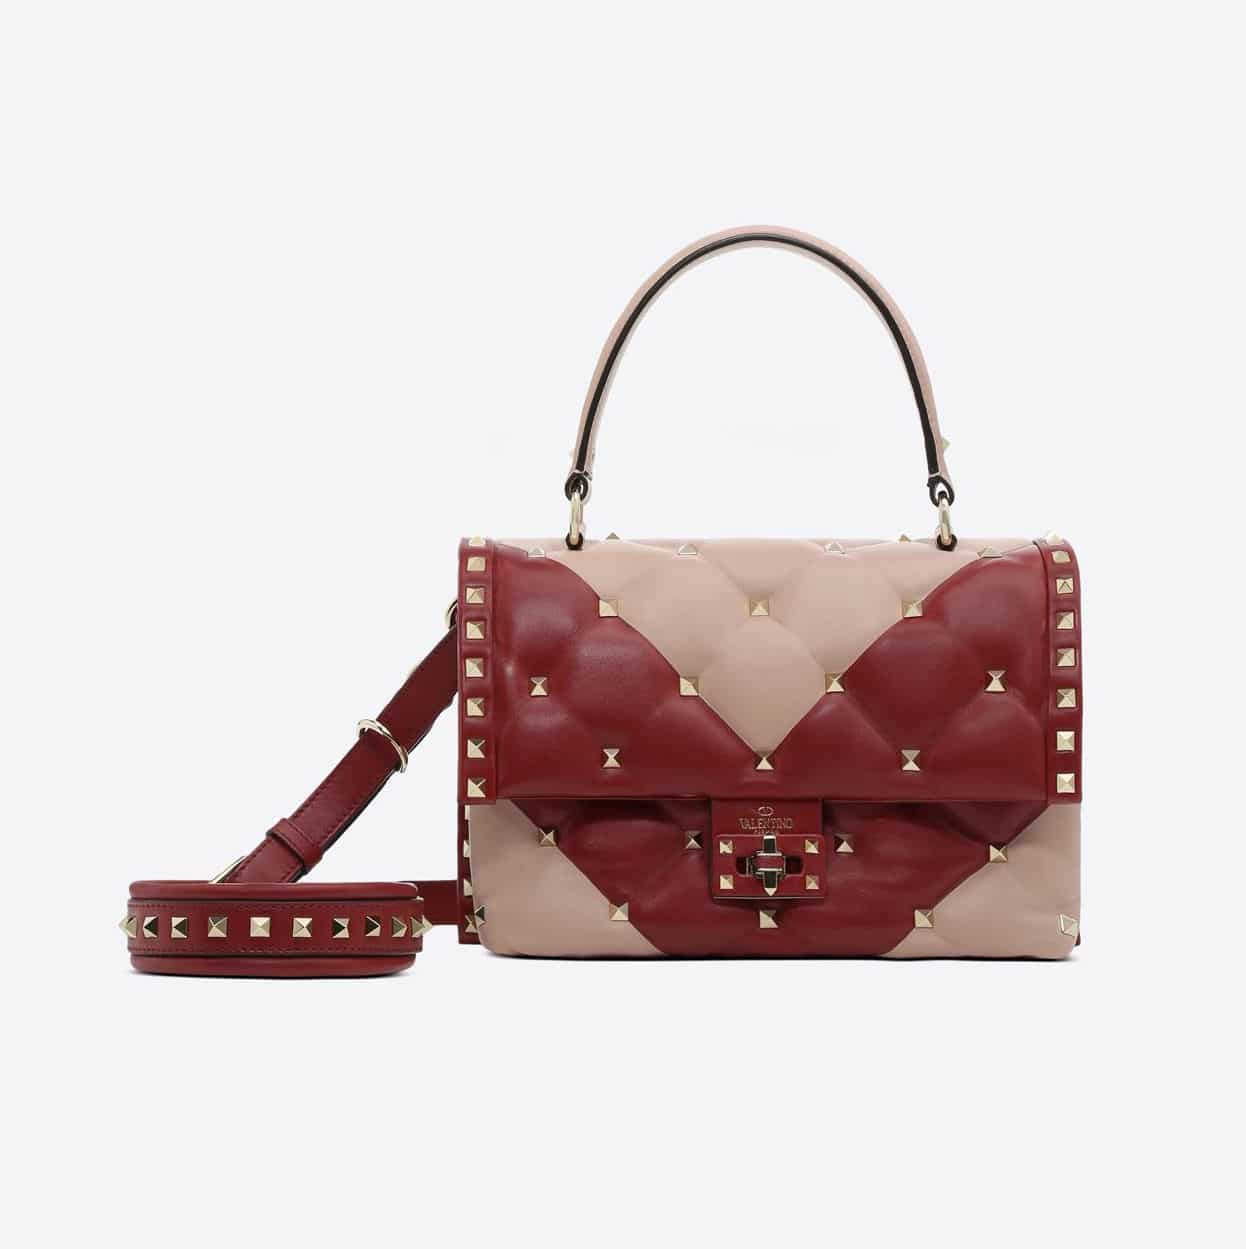 4918e6b71f Valentino Bag Price List Reference Guide | Spotted Fashion